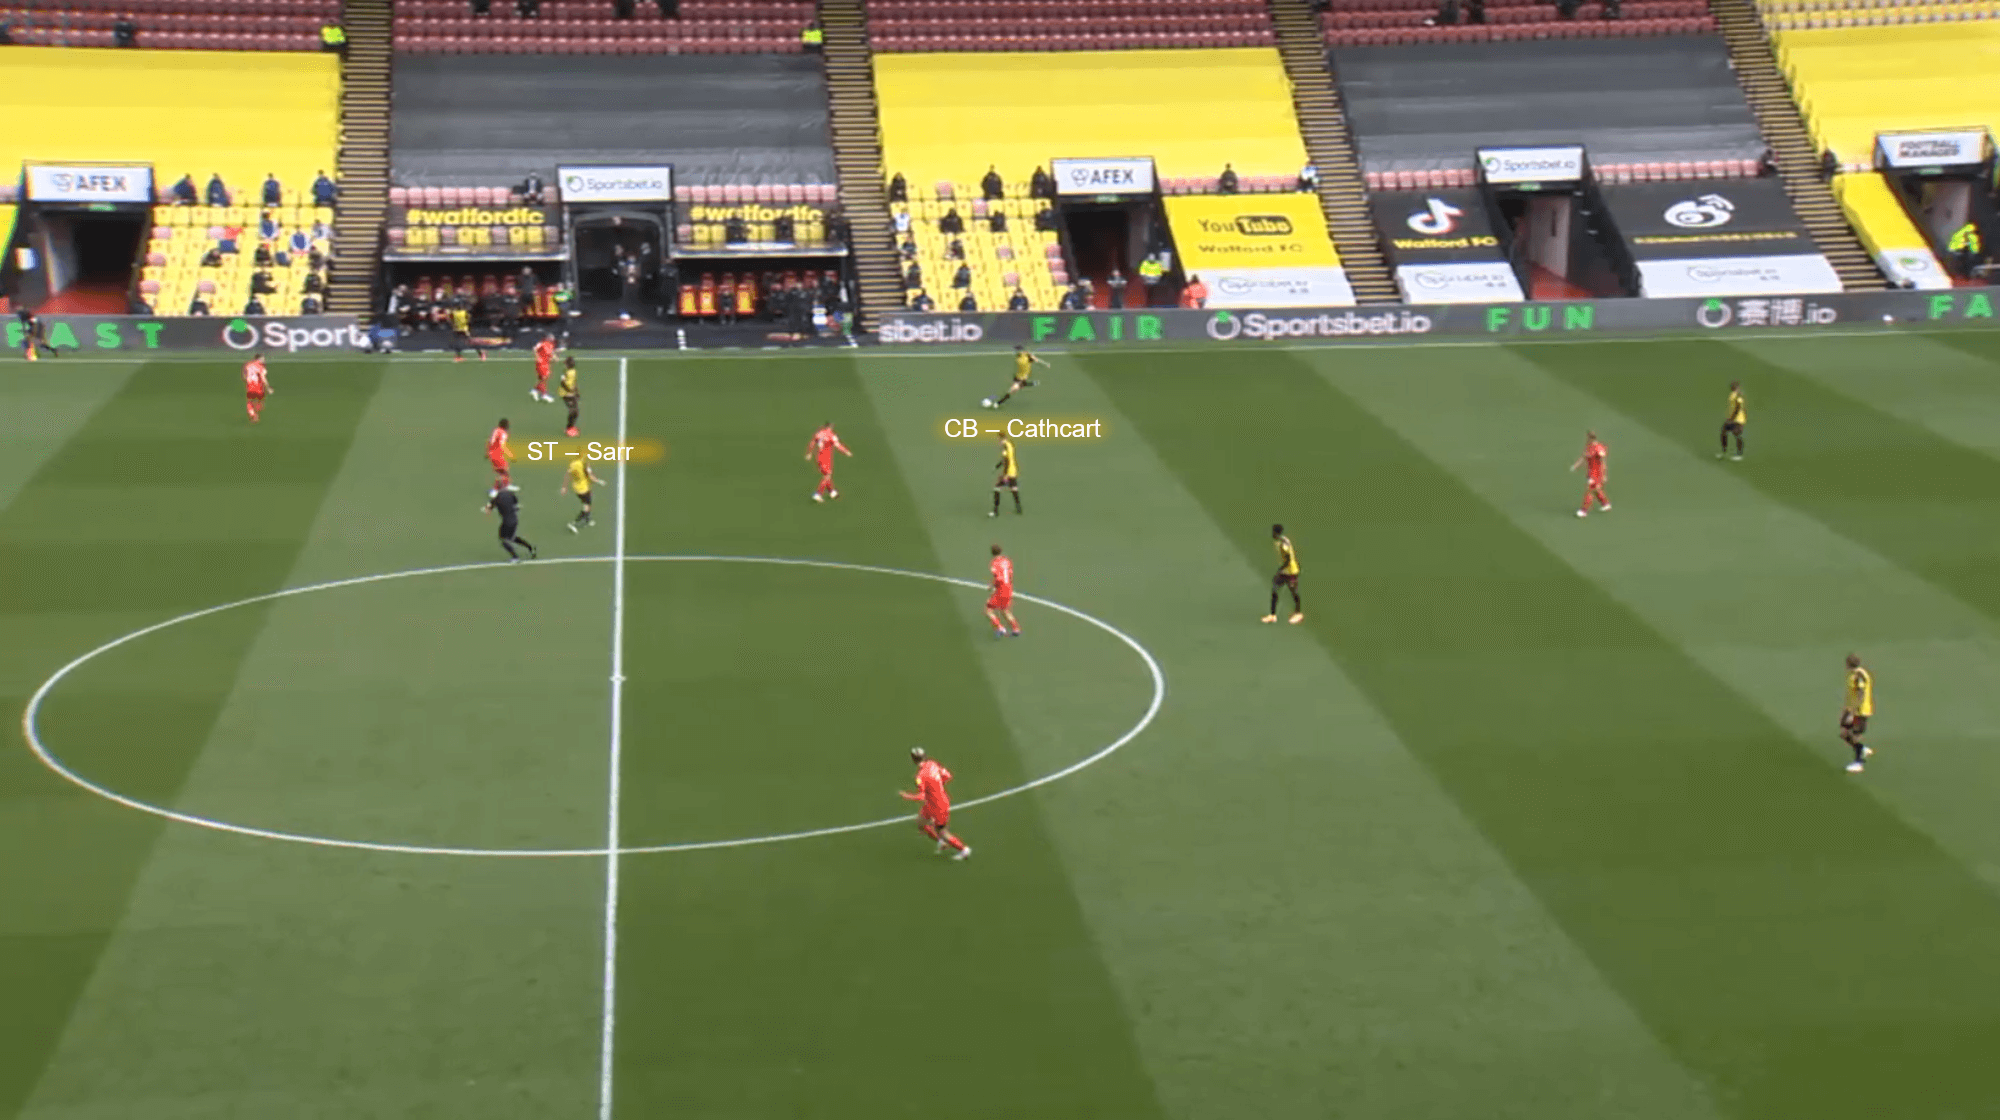 Sema picks the ball up near the touchline and plays it into the space João Pedro created. However, the through ball is hit just too hard for Cleverly to latch onto and the goalkeeper collects. This sequence happens in just the 4th minute of the game and shows early signs of Watford's game plan. As stated earlier, Watford manages to score from a chance much similar to the one above, showing this was how they chose to pick apart Luton's defence.